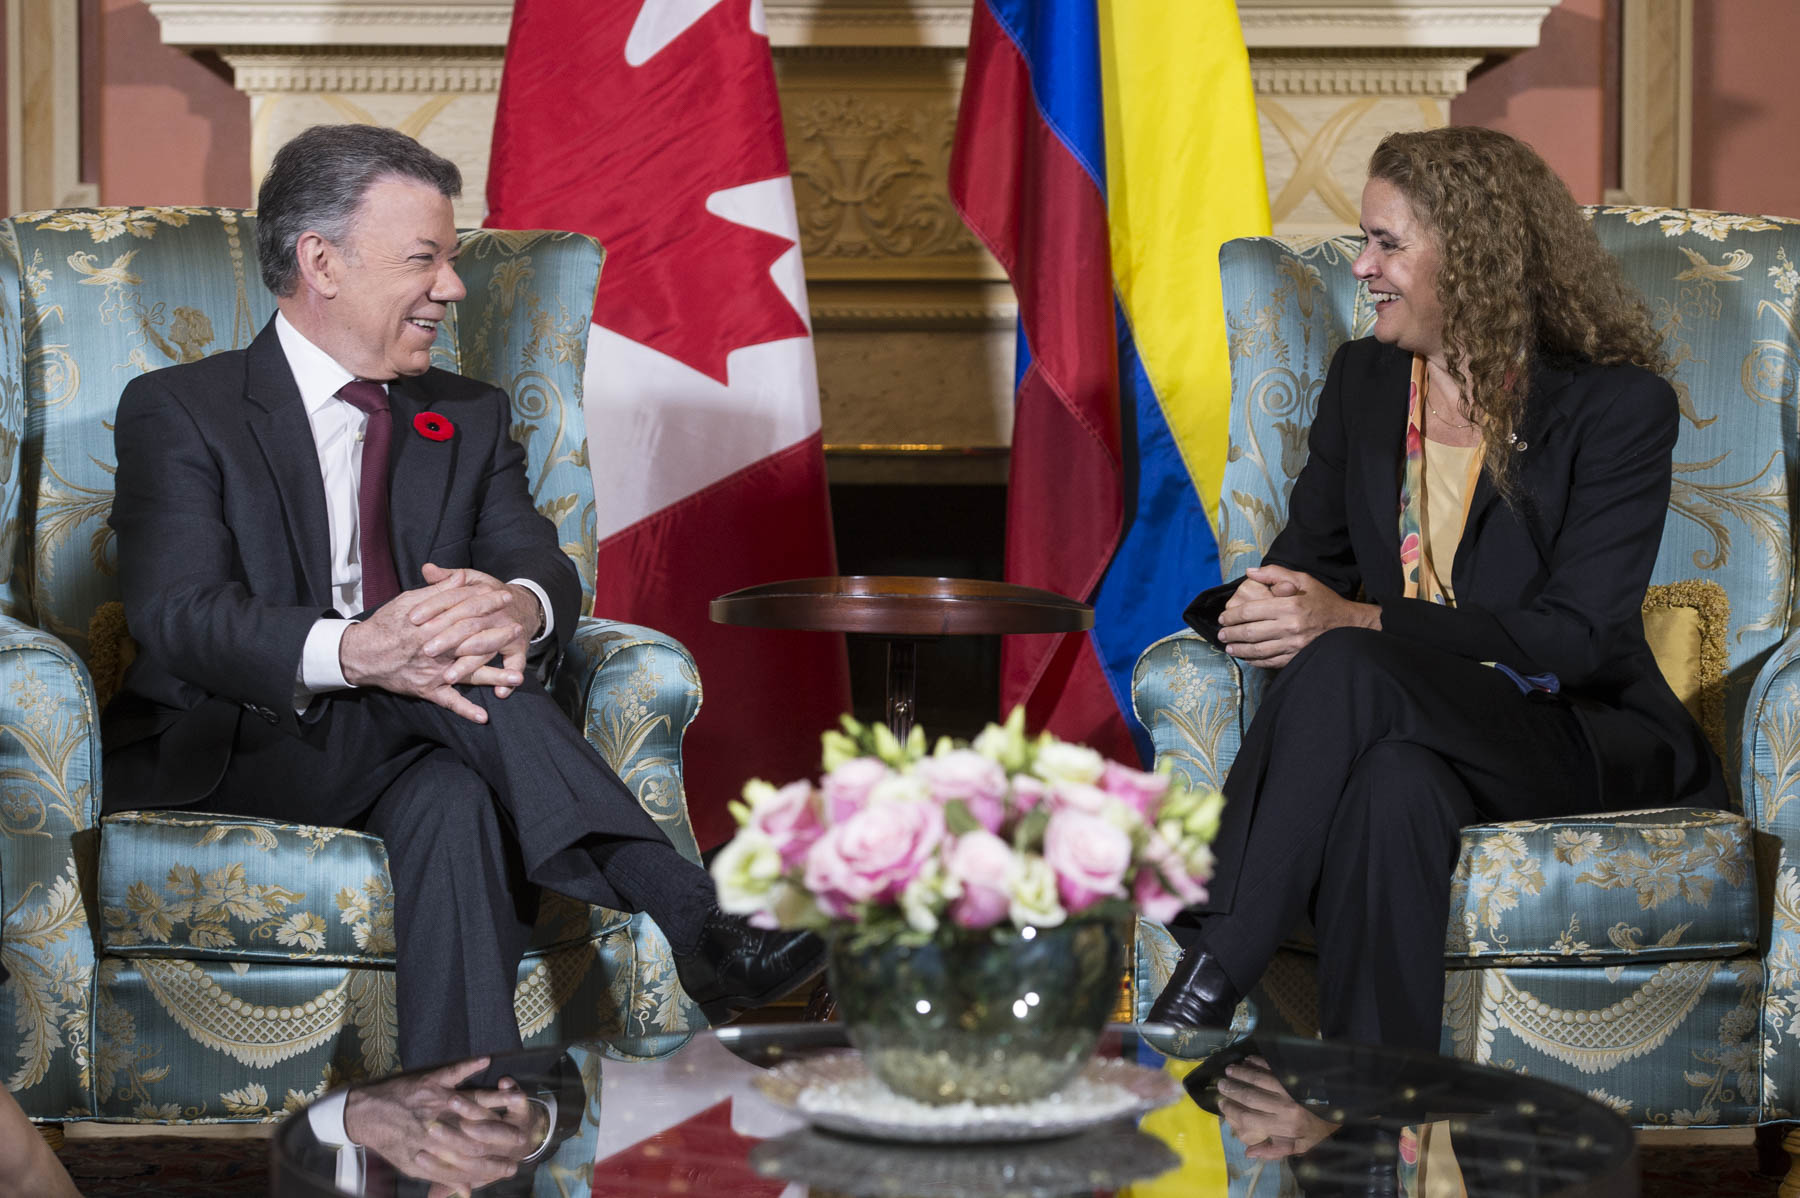 Following the welcoming ceremony, the Governor General and the President had a meeting inside the residence.